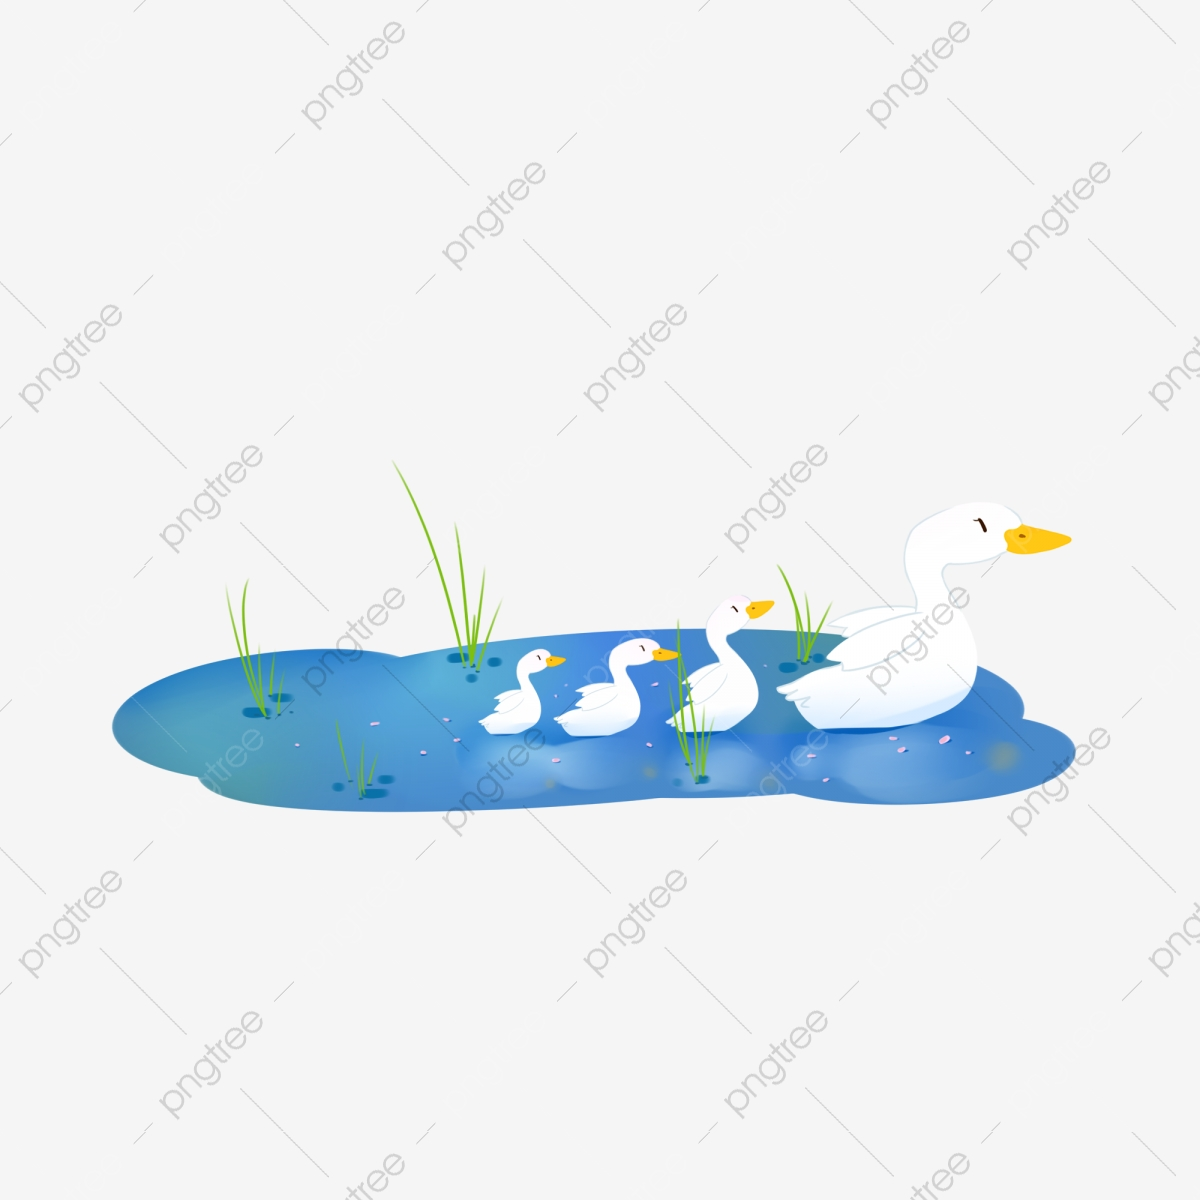 Duckling clipart group duck. Summer lovely mother